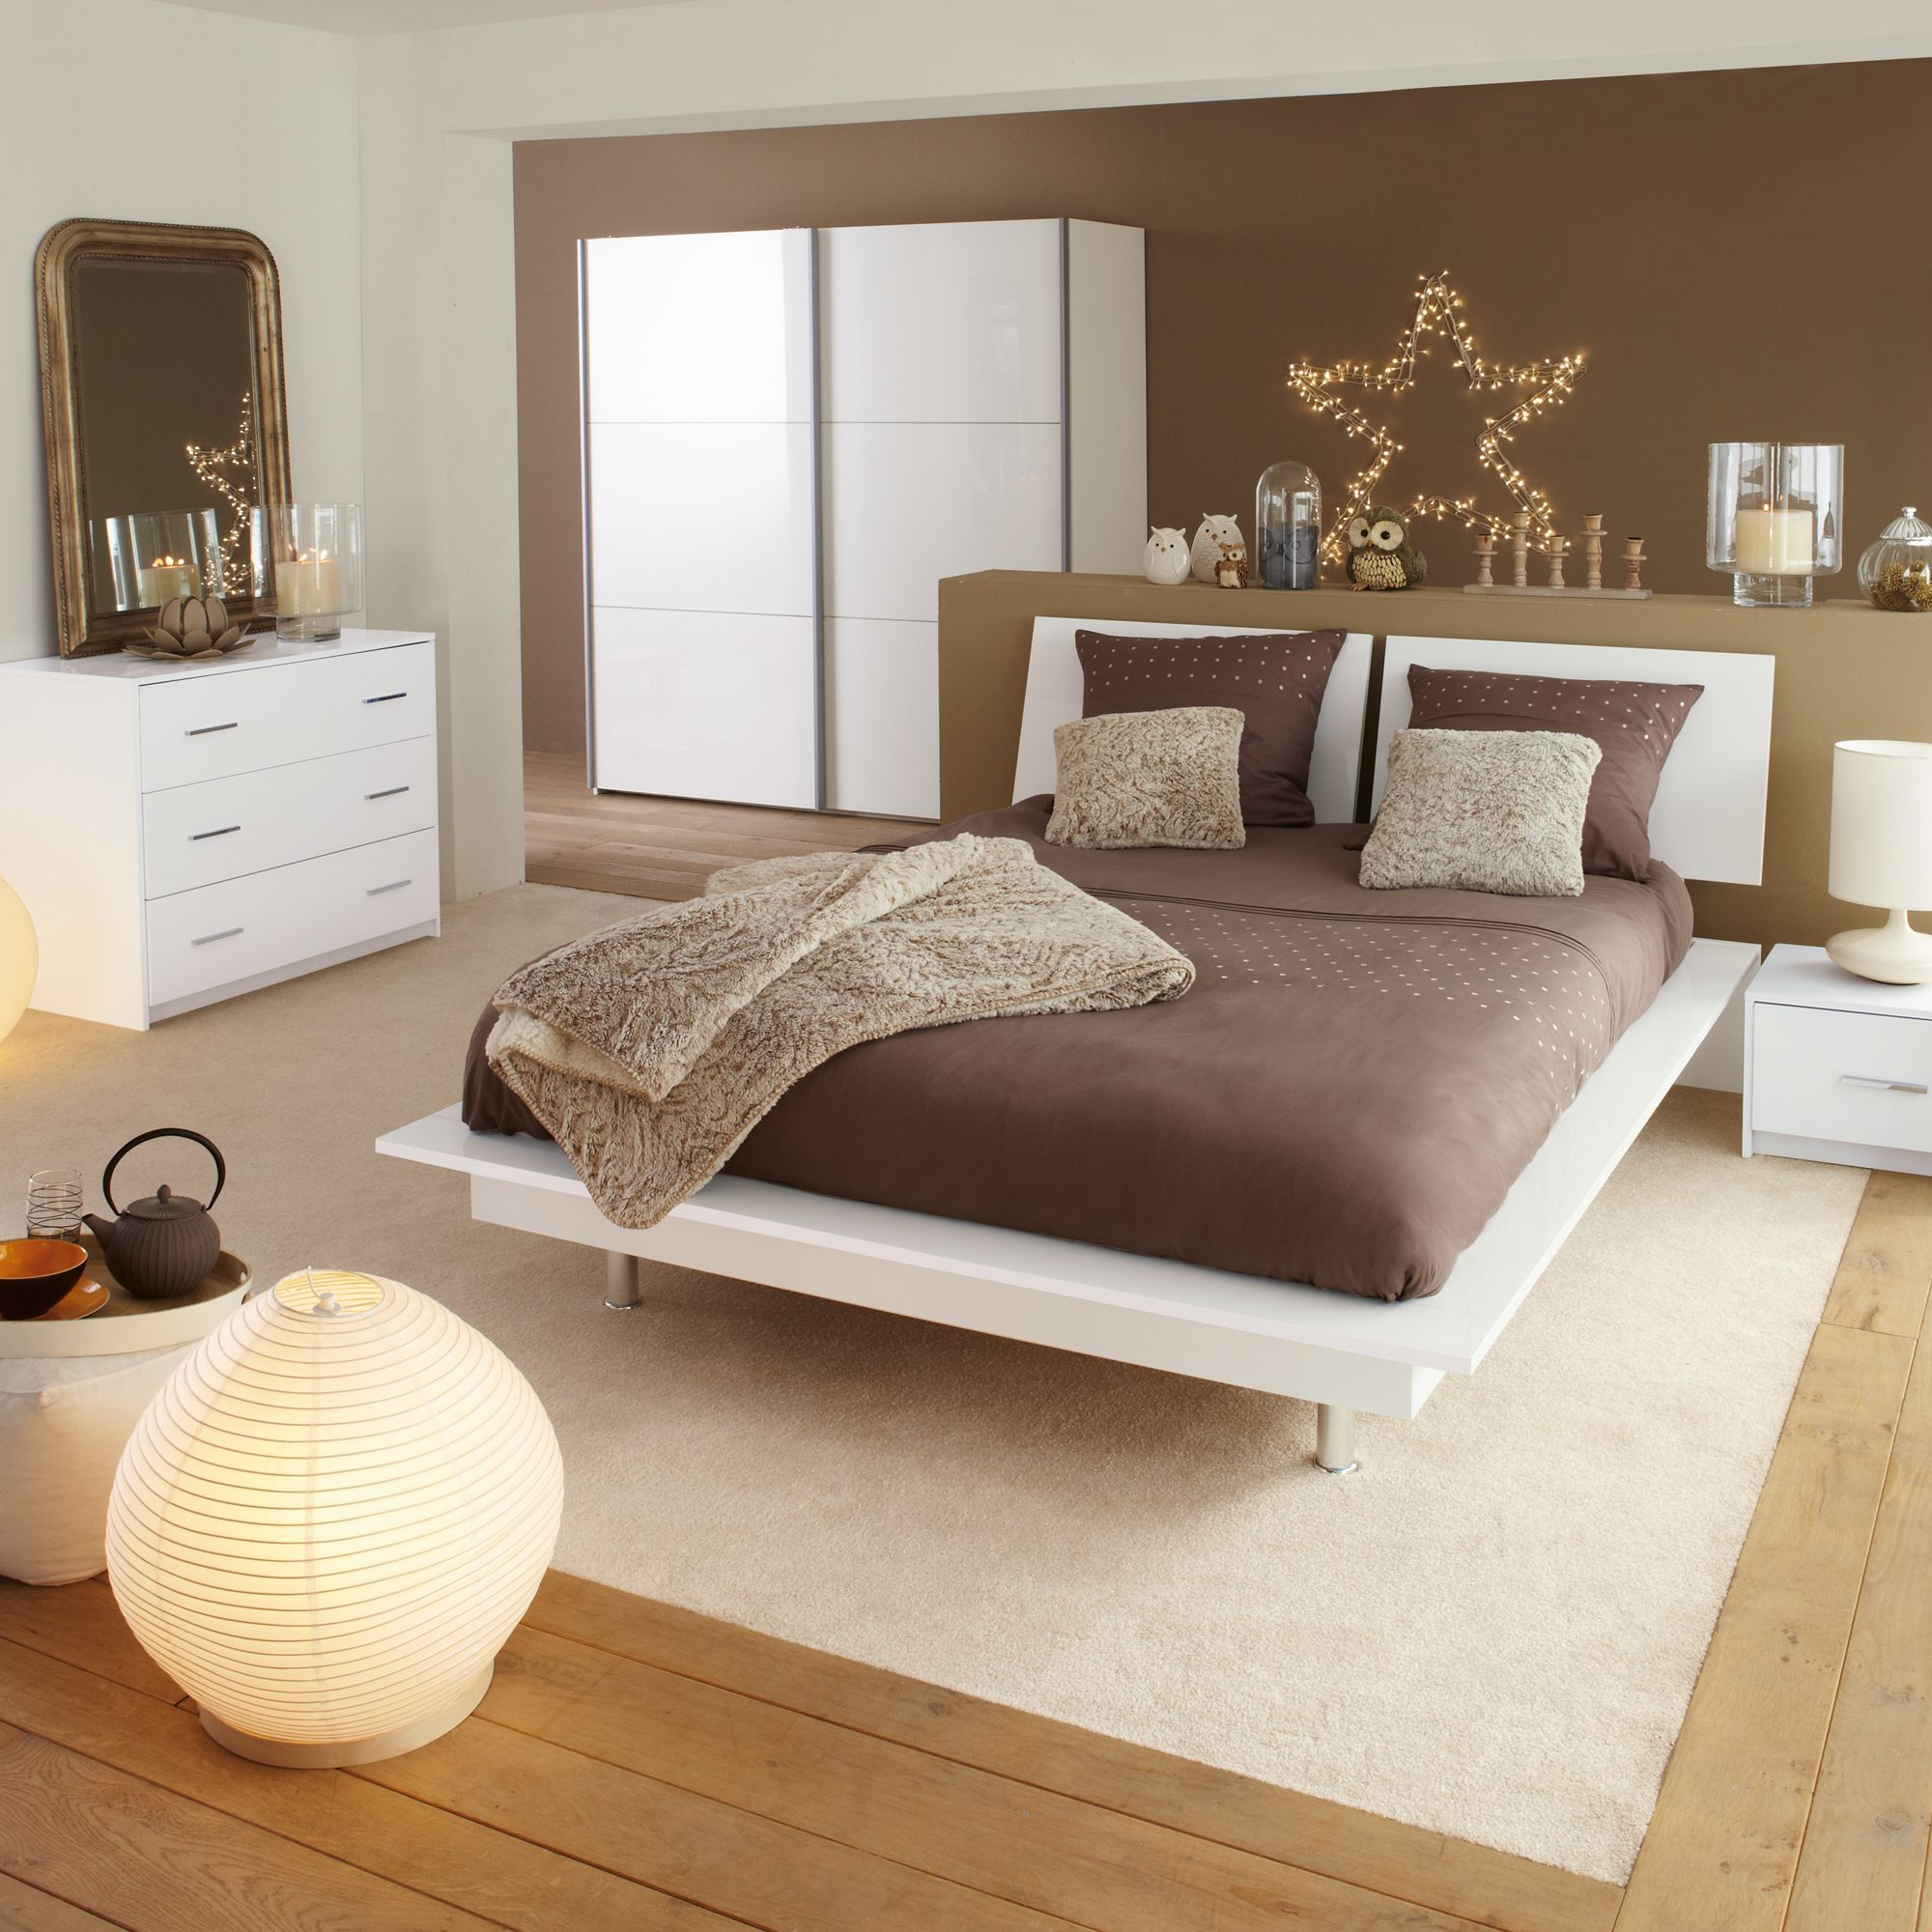 lit en 140x200cm et 2 chevets blanc blanc nuvola lits 2 places les lits chambre. Black Bedroom Furniture Sets. Home Design Ideas